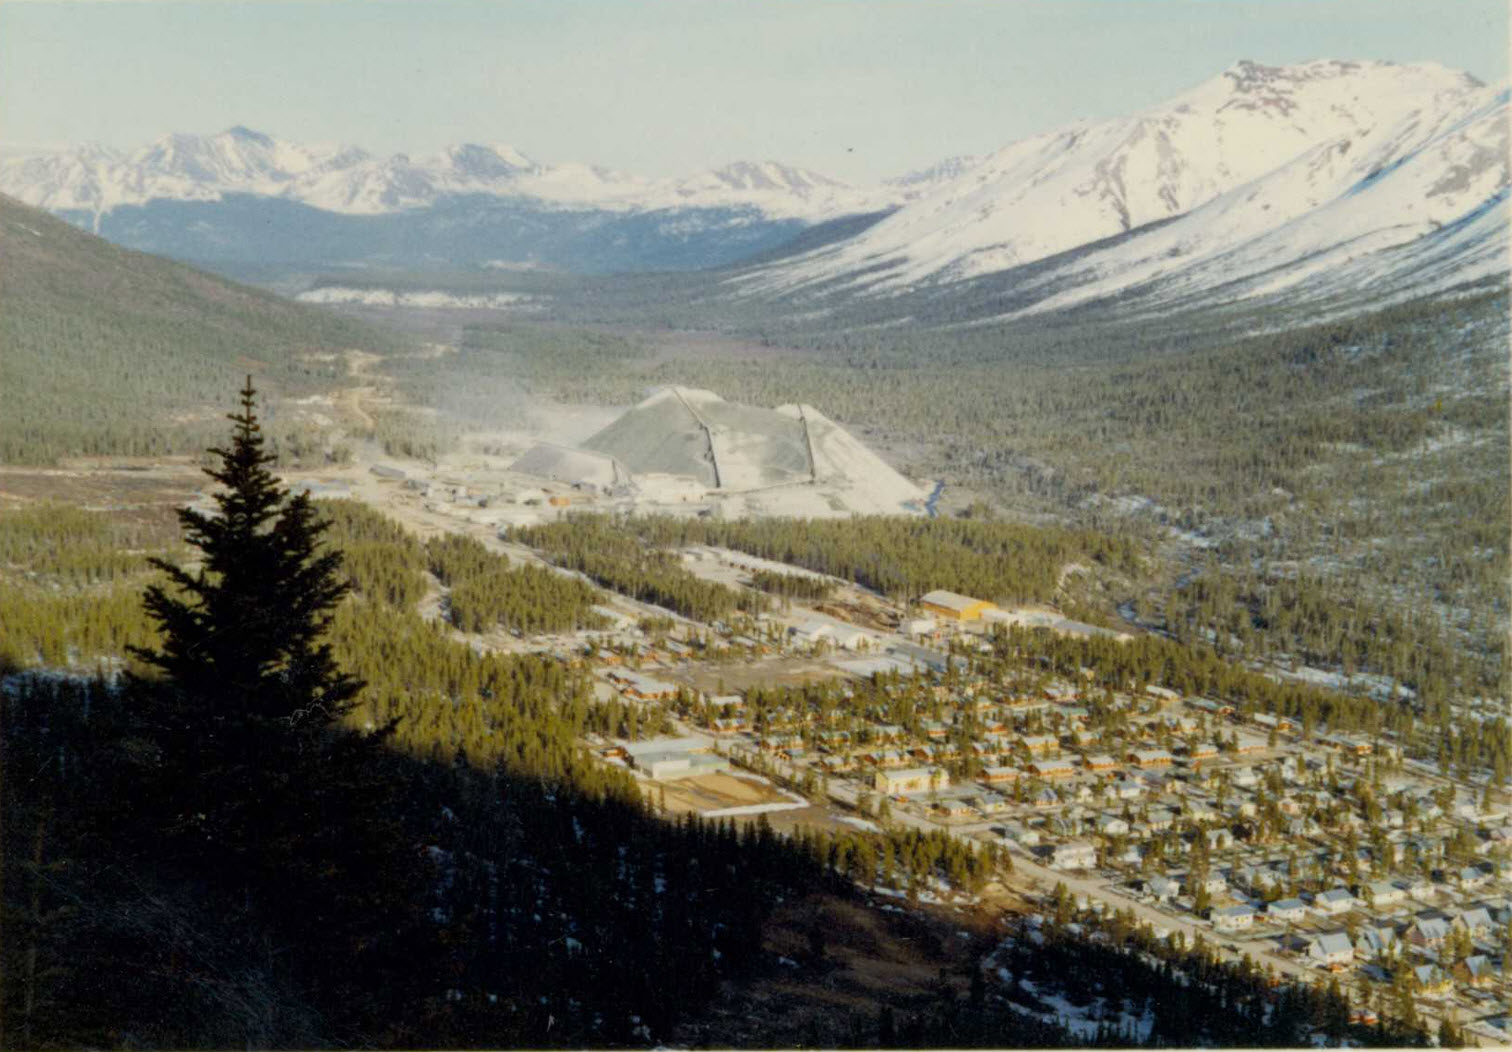 Historical photo of the town and mine of Cassiar, B.C.